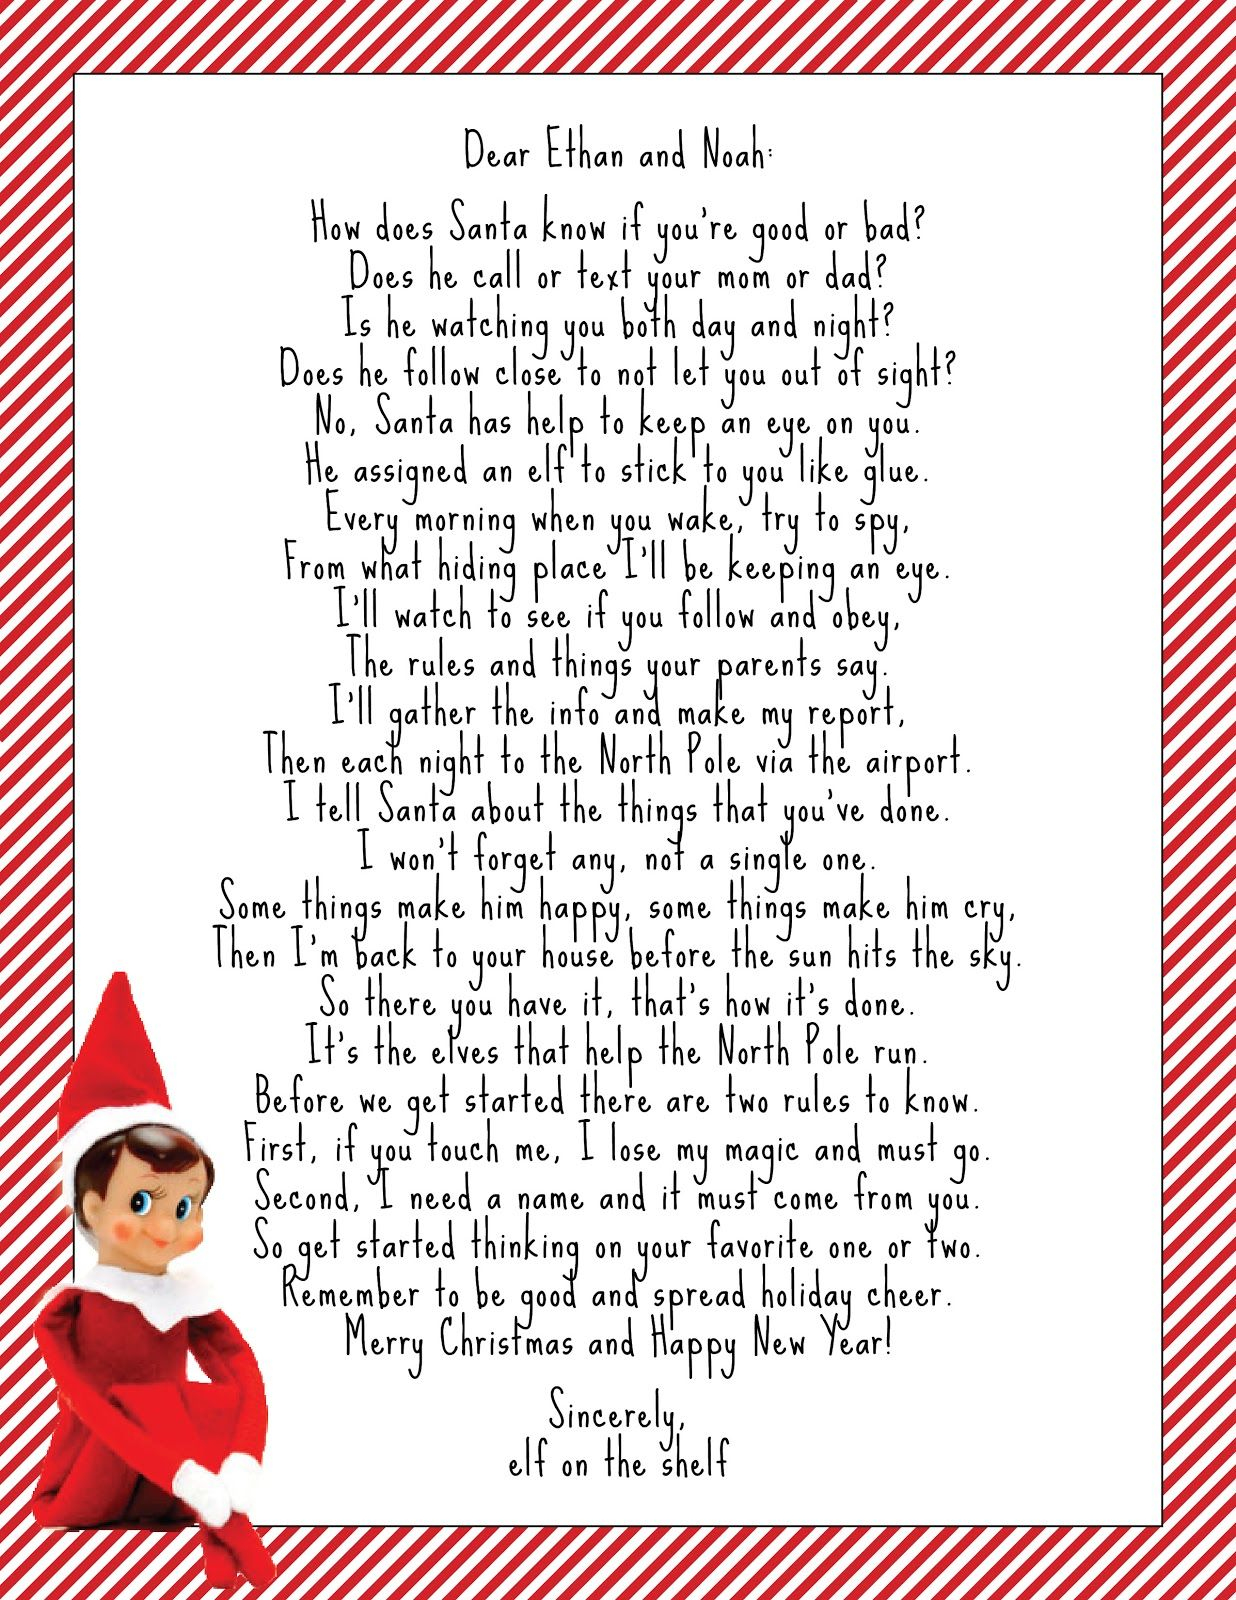 Elf on the shelf welcome letter google search kids room elf on the shelf welcome letter google search pronofoot35fo Images